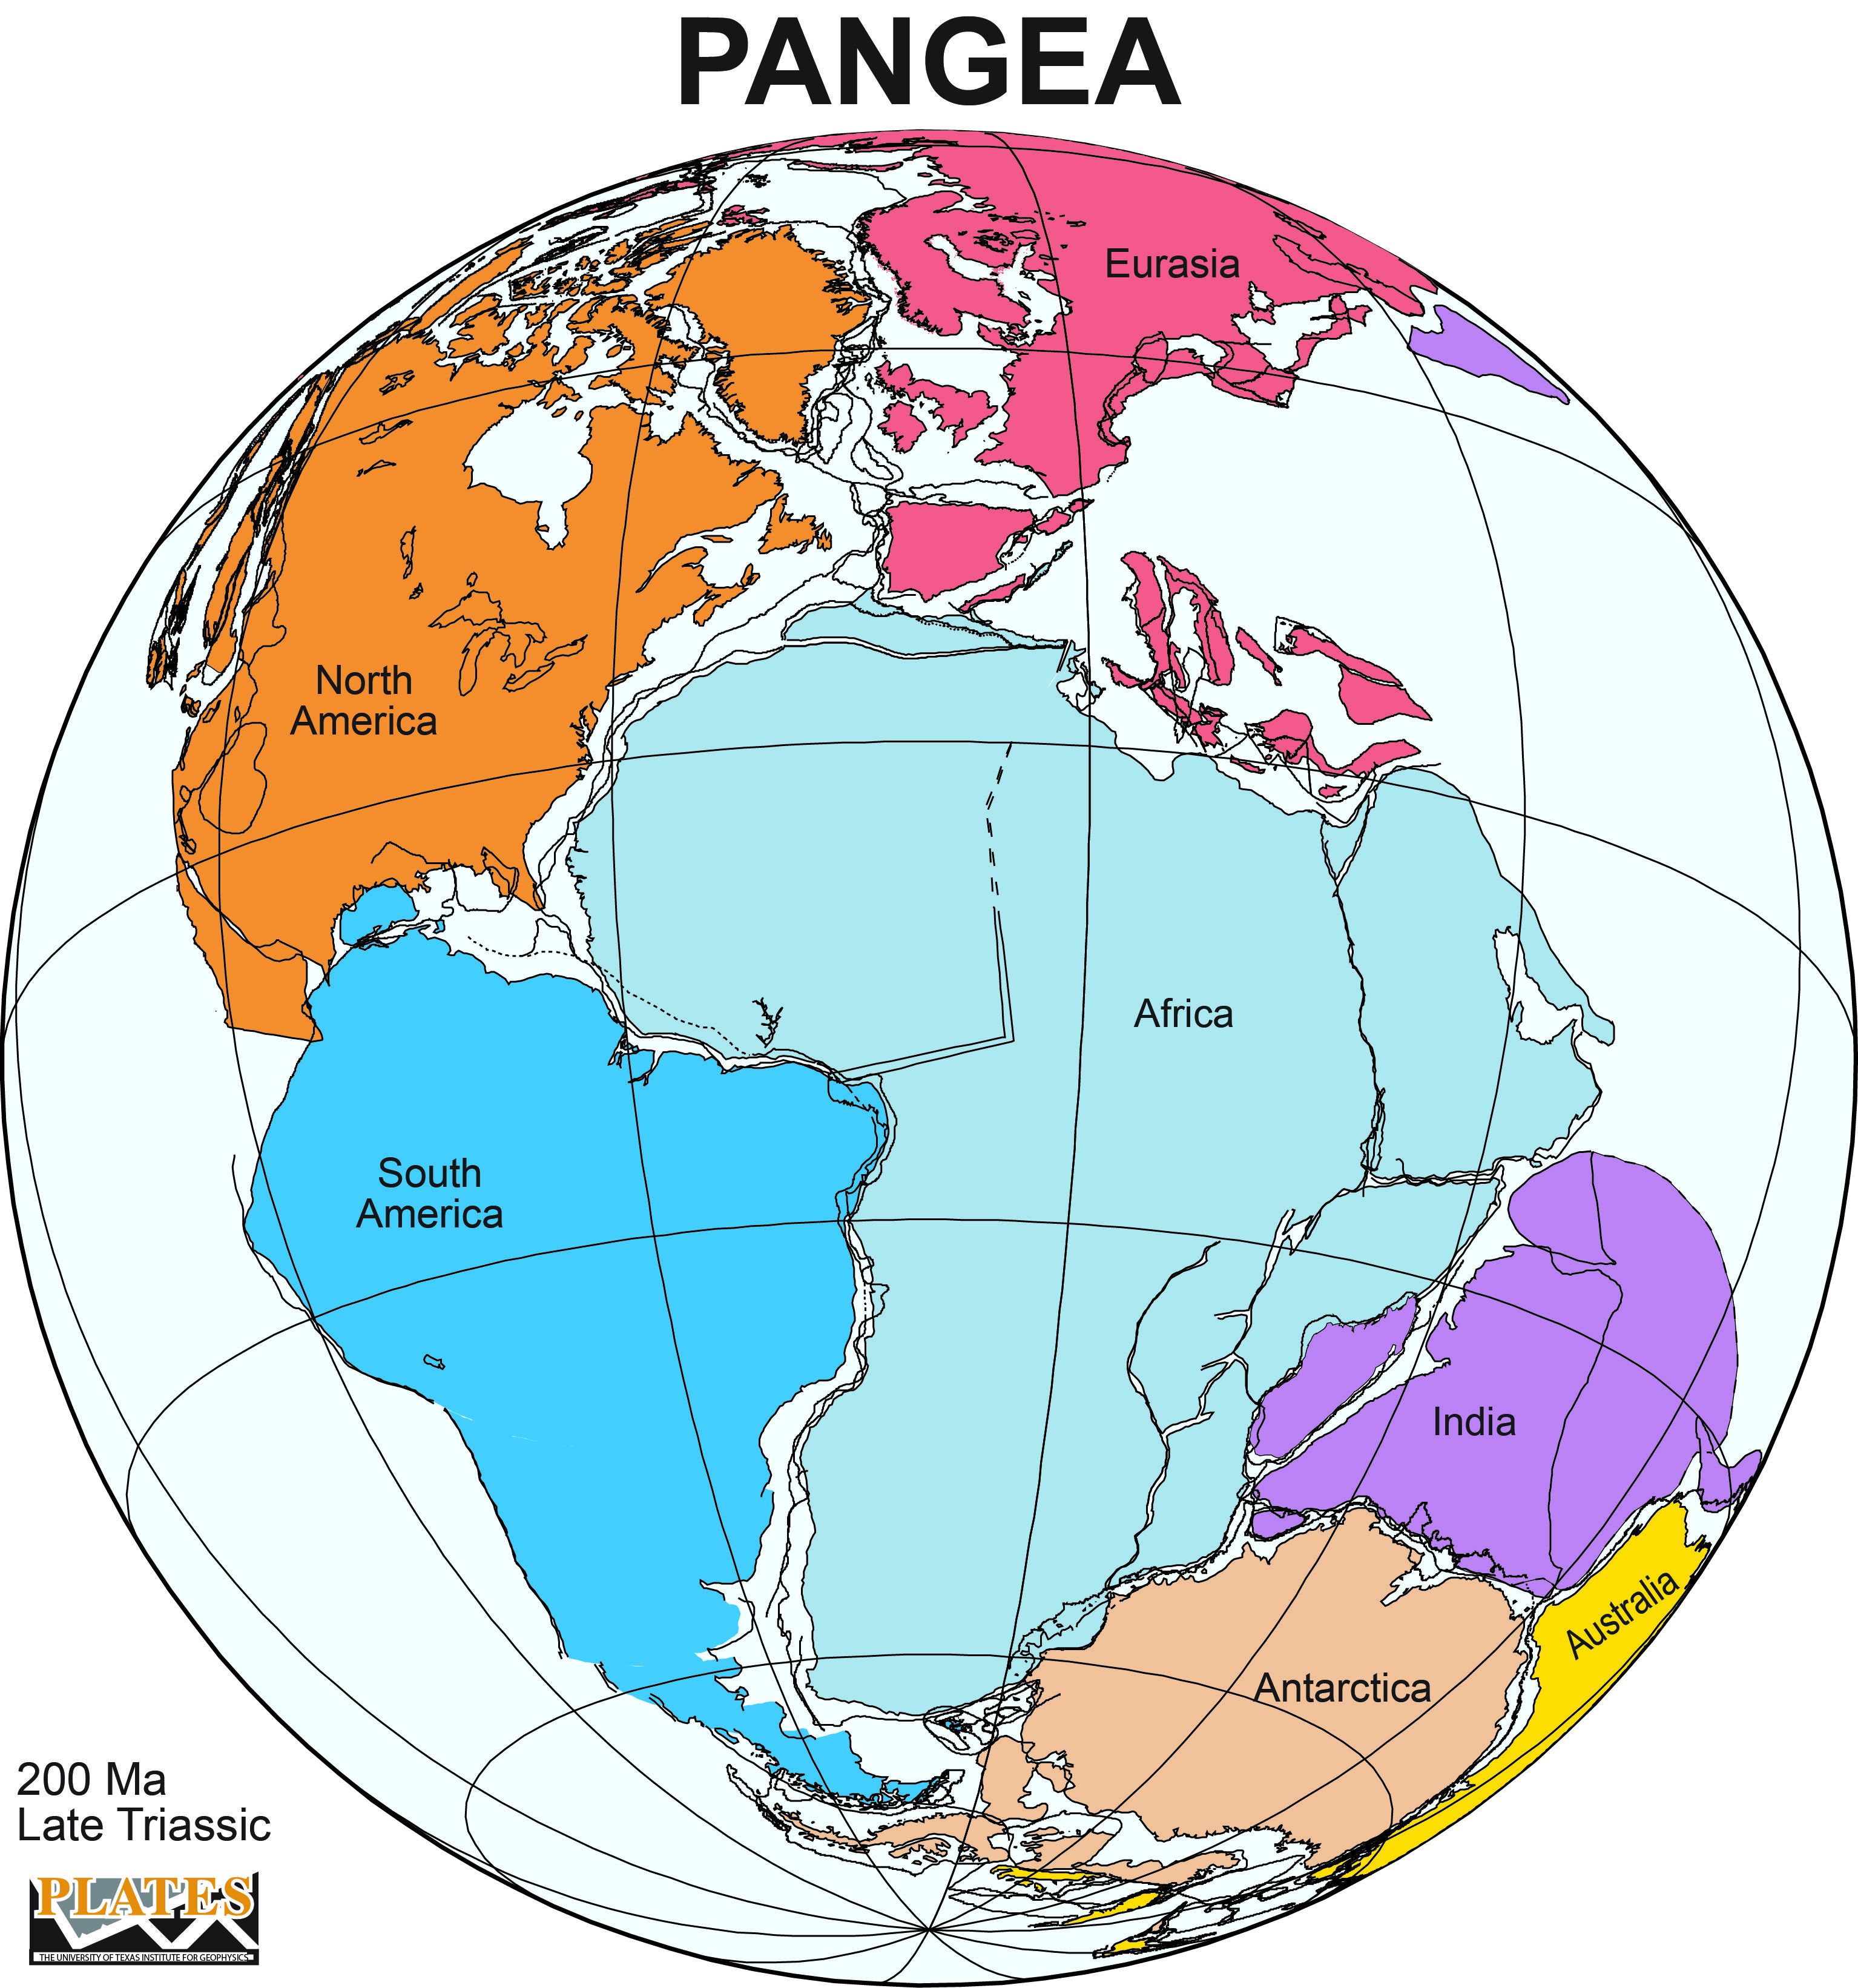 Pangea Was A Supercontinent That Existed About 300 Million